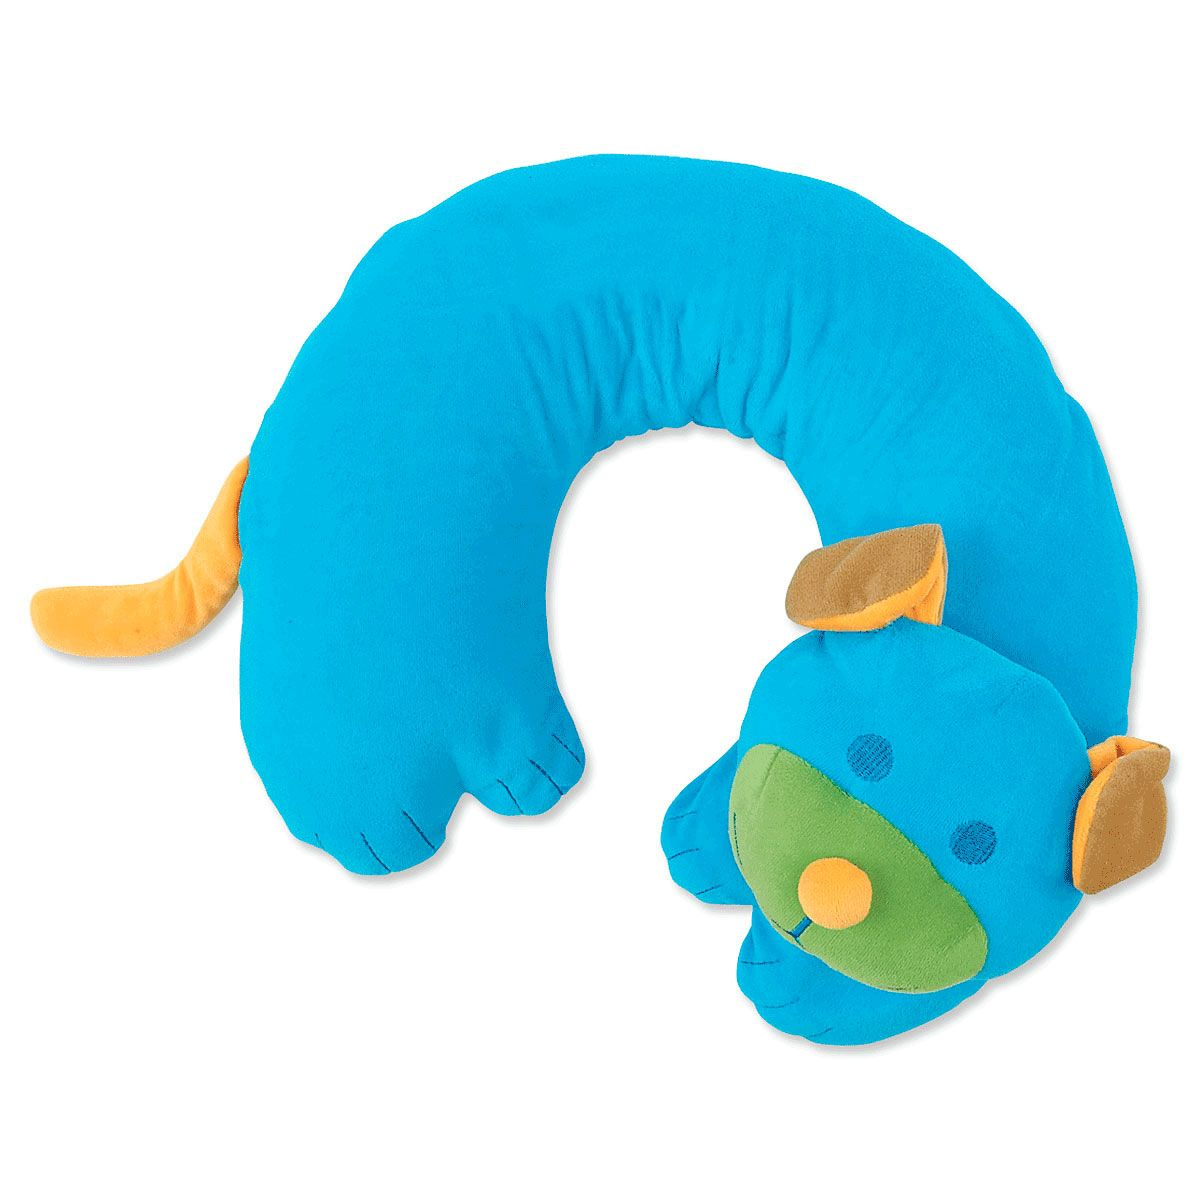 Kids Travel Pillows